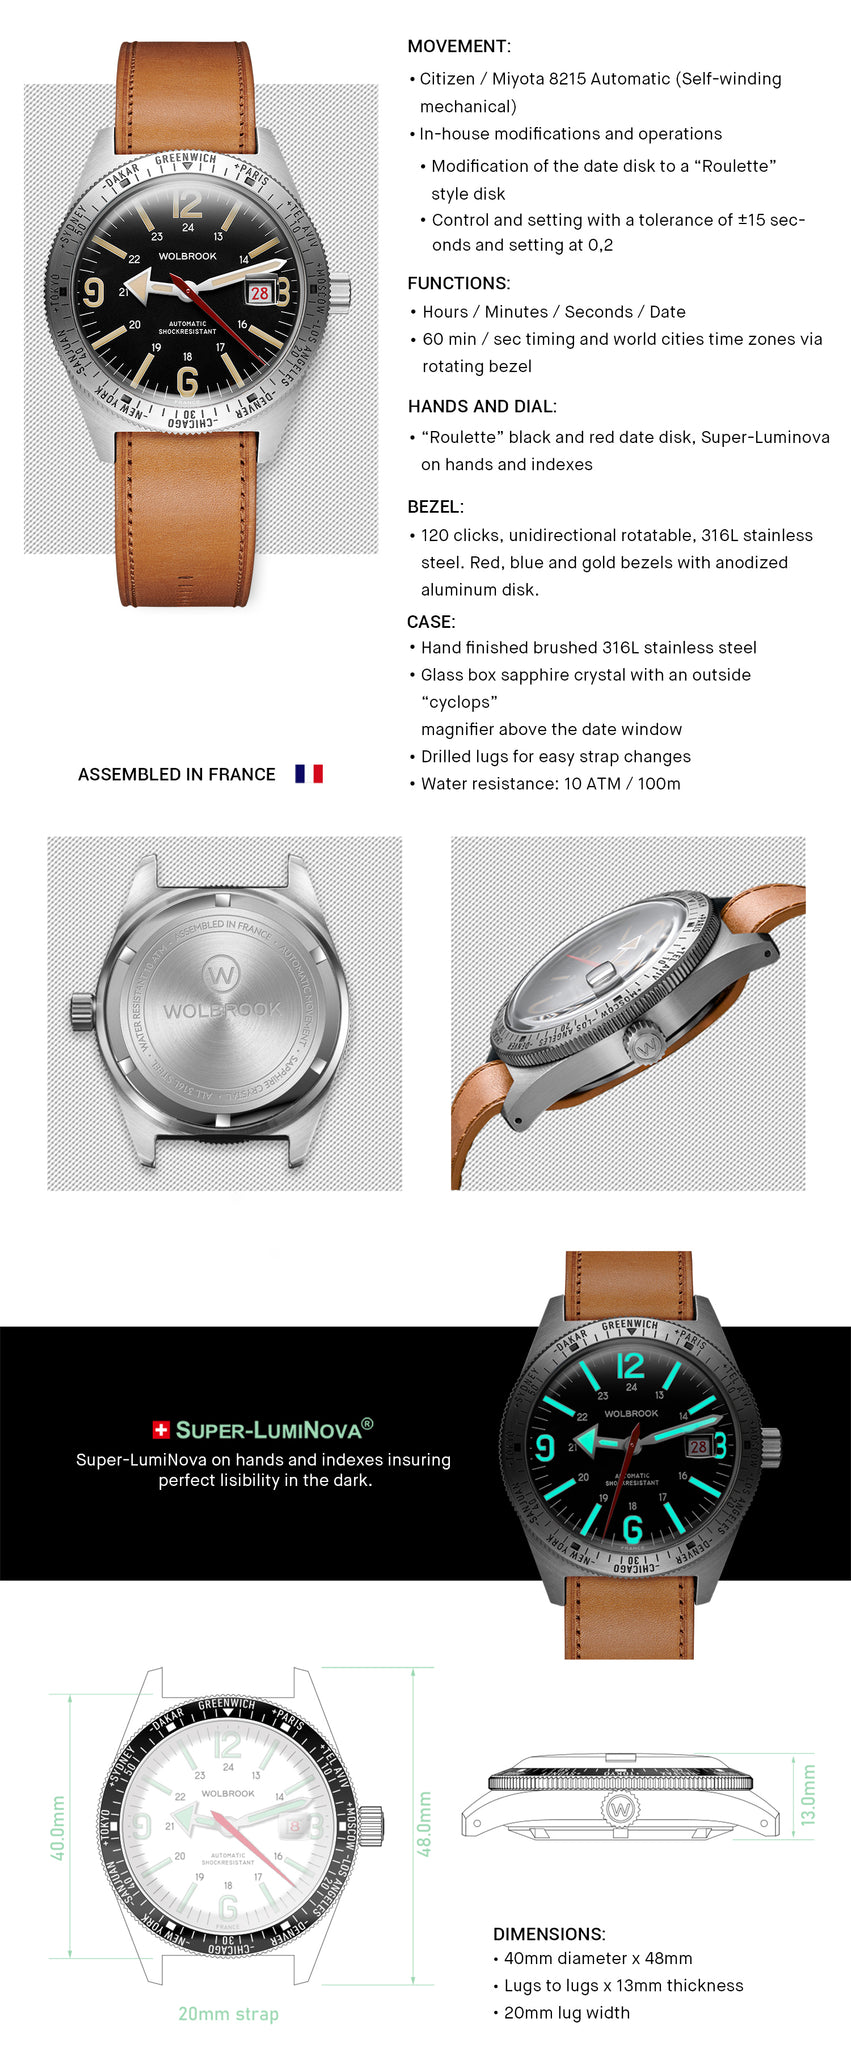 Skindiver WT Automatic Watch Specifications